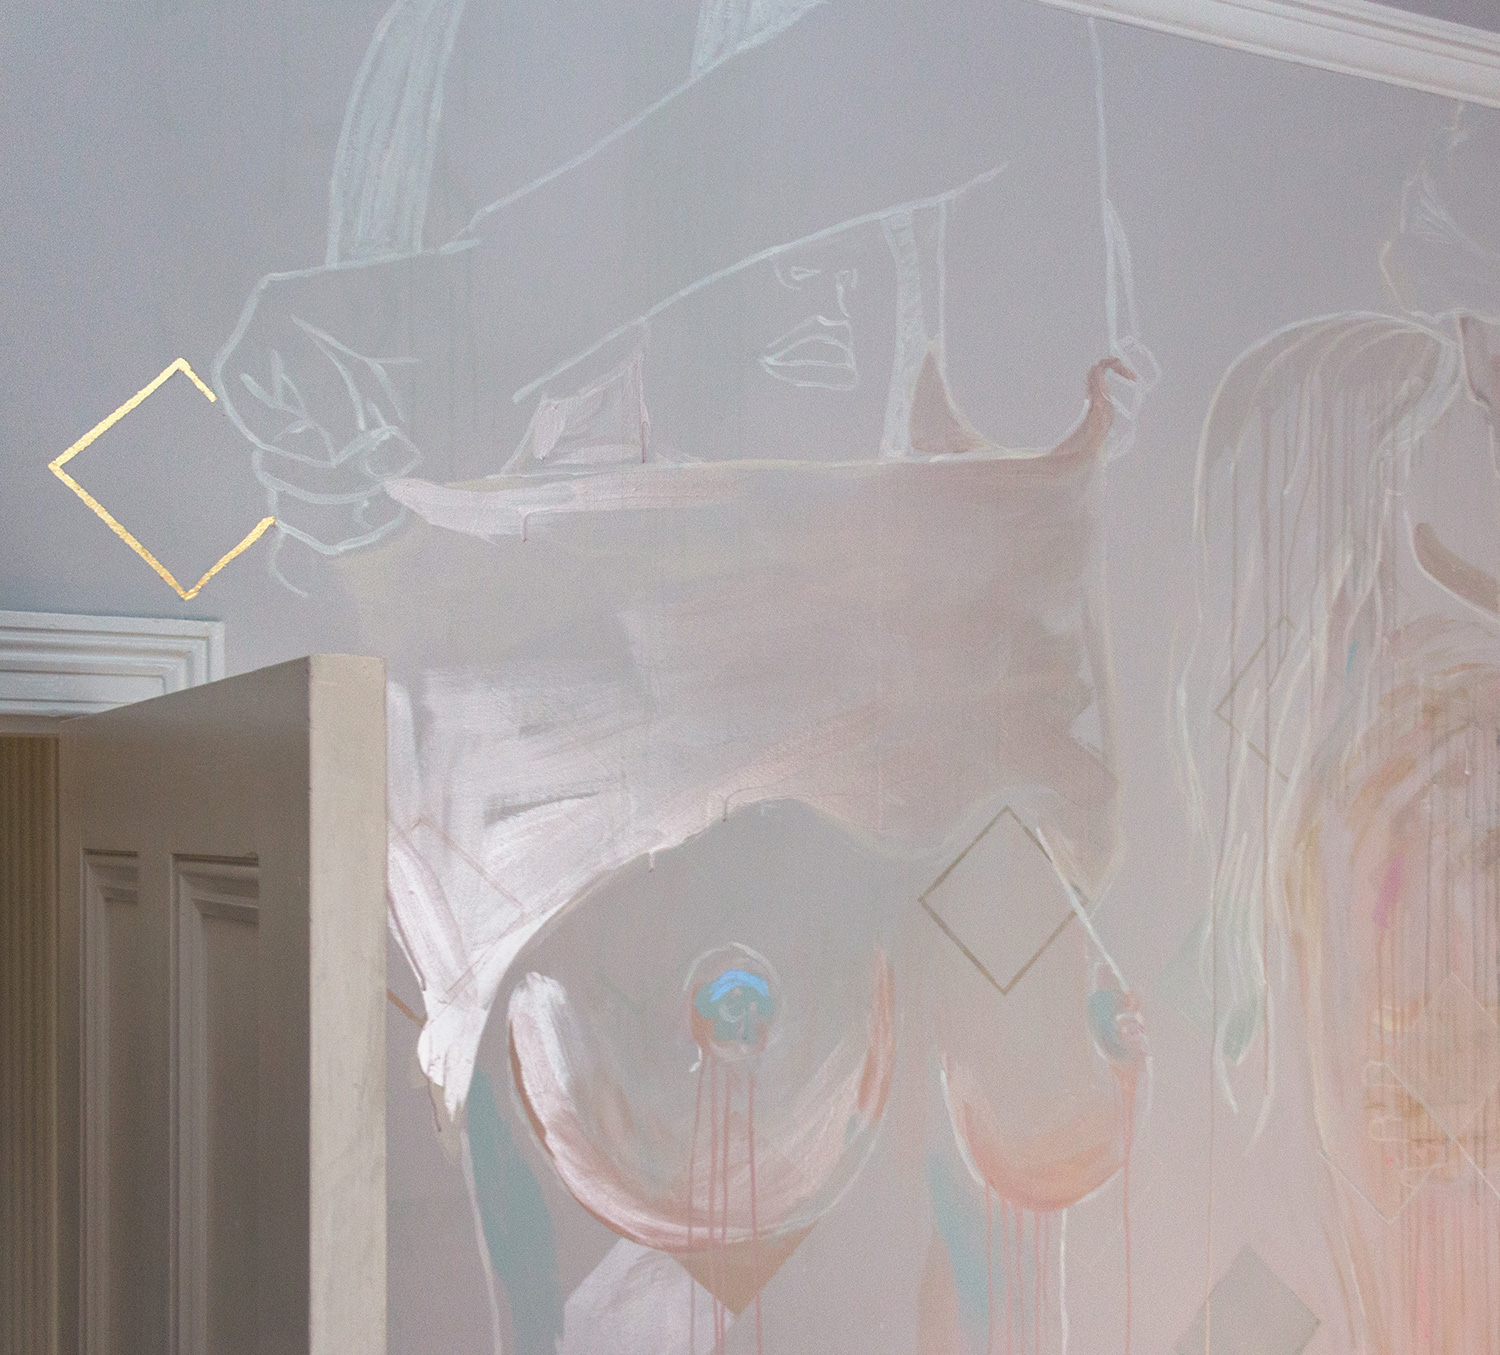 Topless woman mural - female is taking her top off and exposing her naked breasts. Painted in pastel and metallic colours, the woman's top glows.